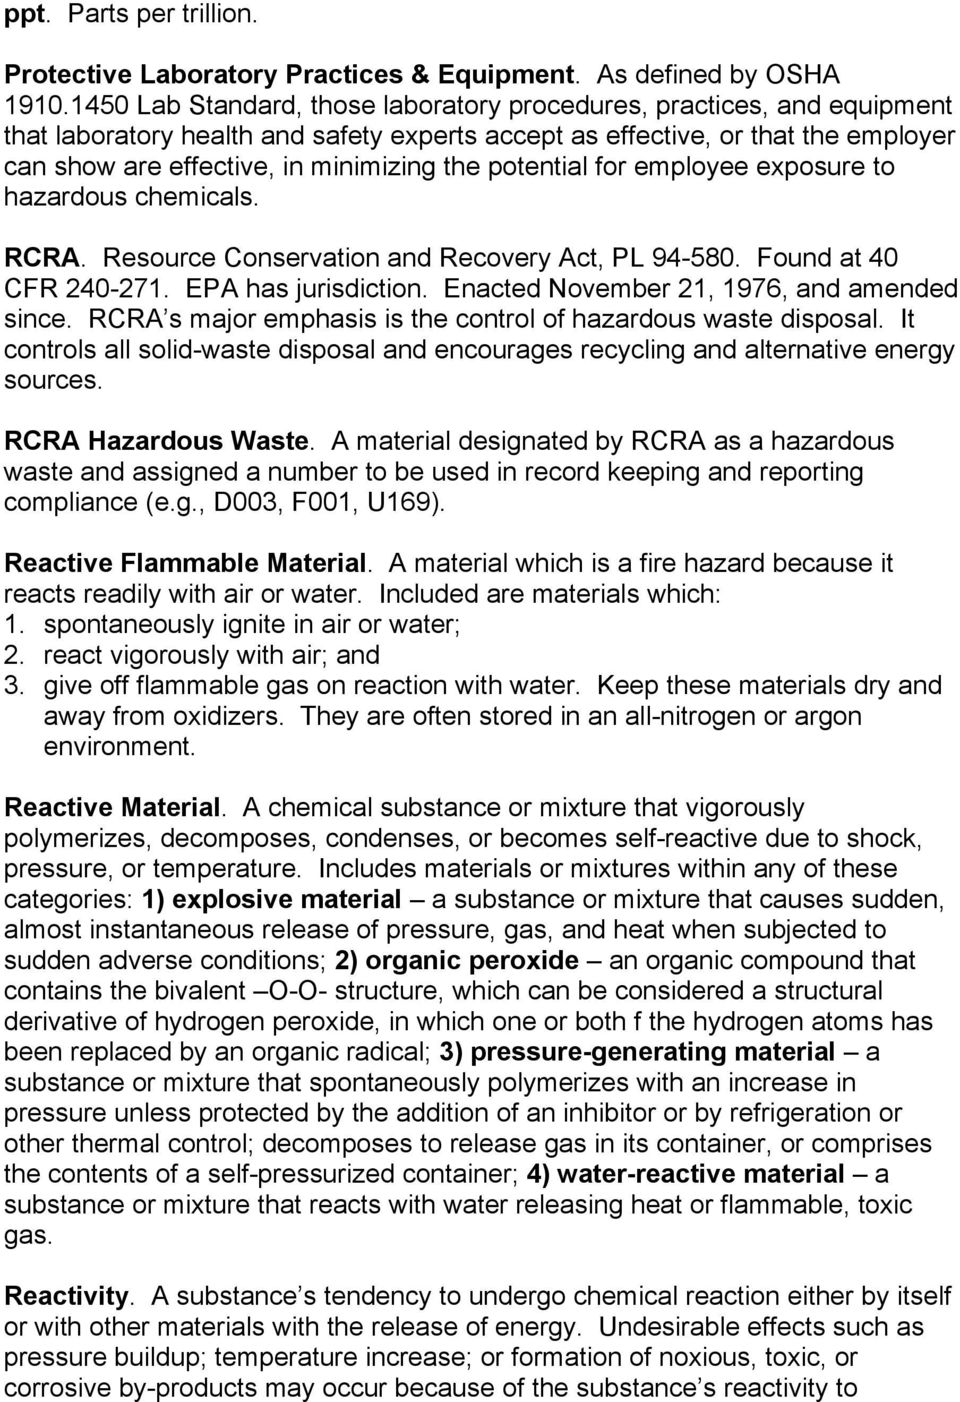 potential for employee exposure to hazardous chemicals. RCRA. Resource Conservation and Recovery Act, PL 94-580. Found at 40 CFR 240-271. EPA has jurisdiction.